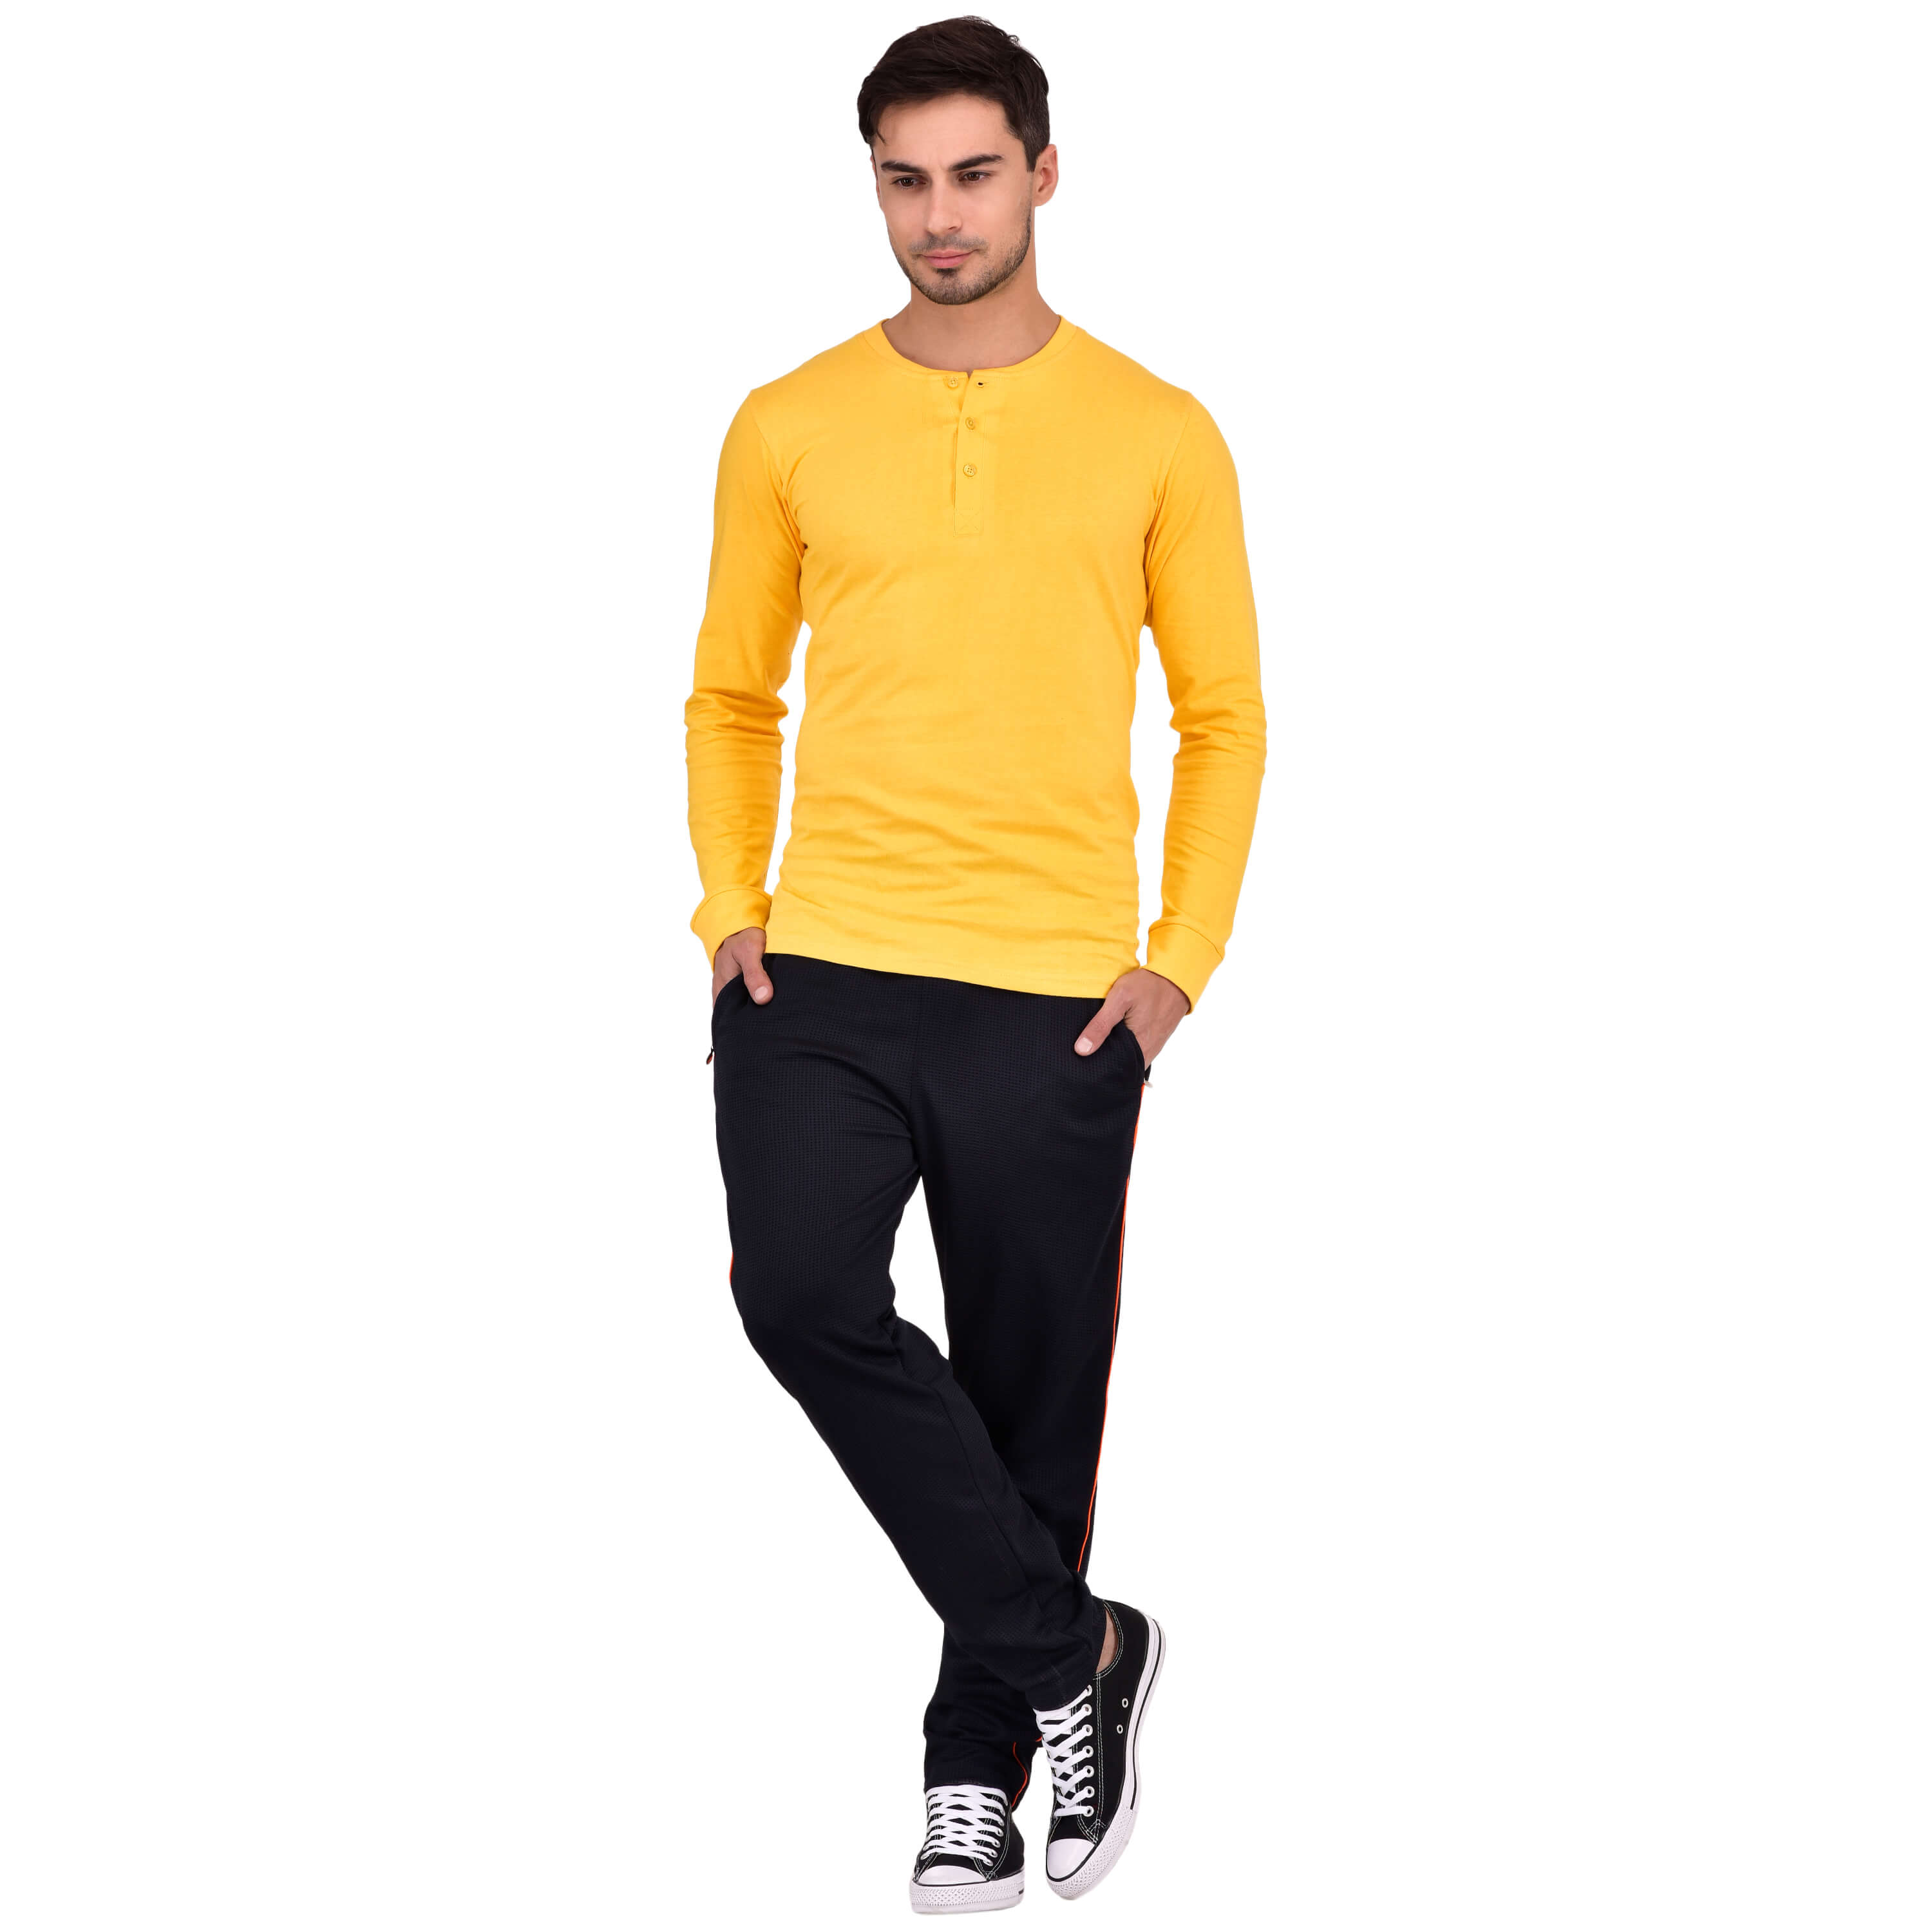 Long Sleeve Soccer Jerseys Manufacturers, Wholesale Suppliers